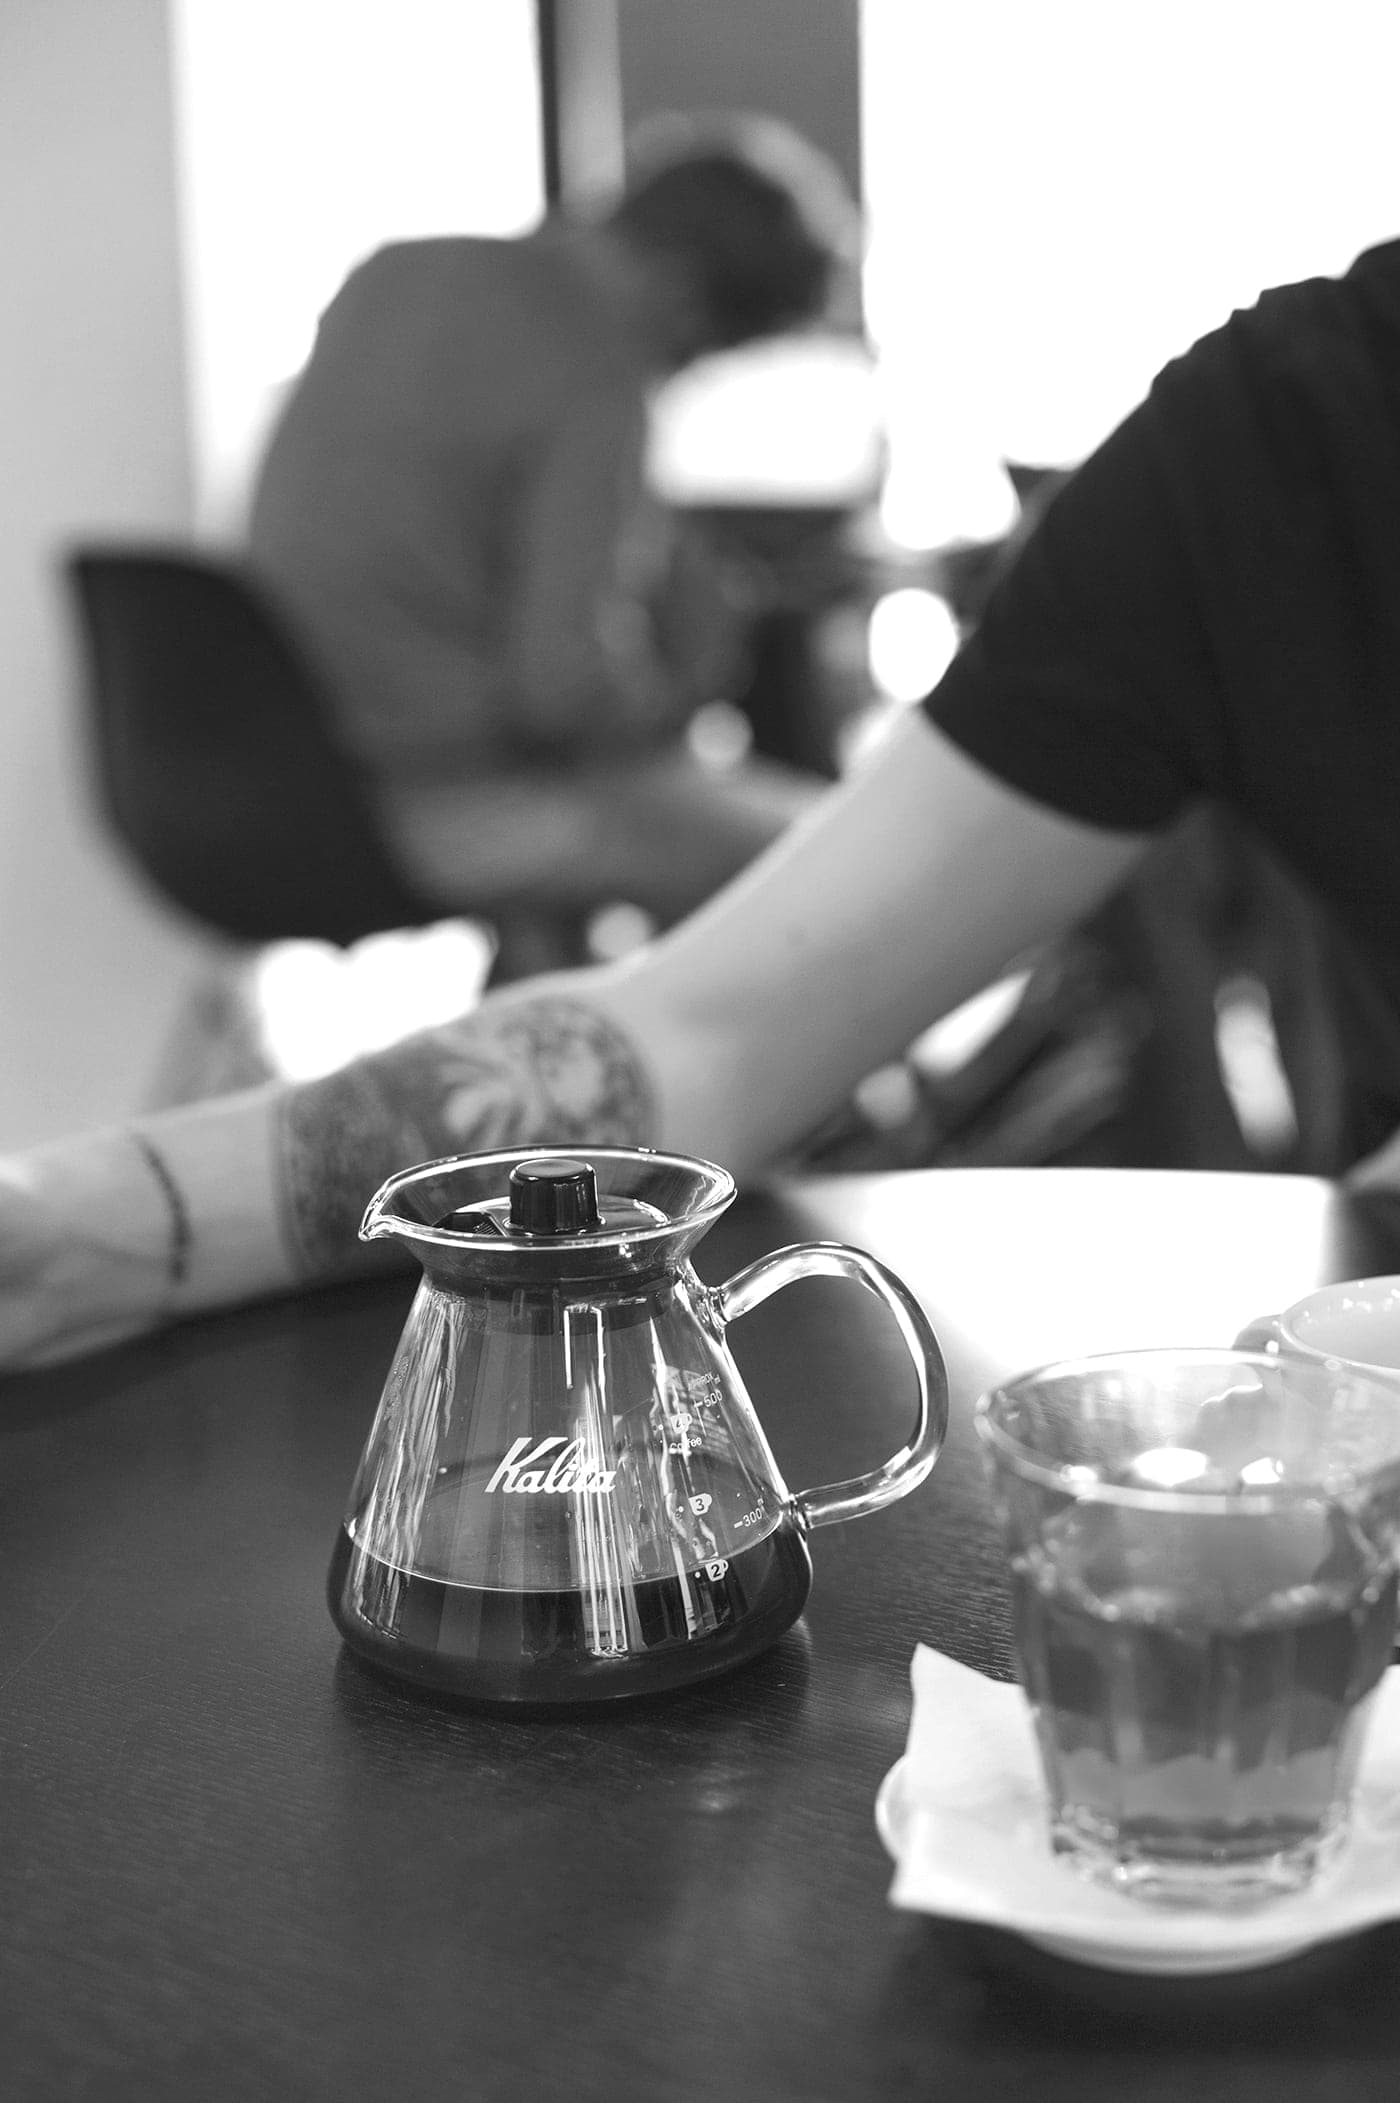 Copenhagen | wanderlust | democratic coffee V60